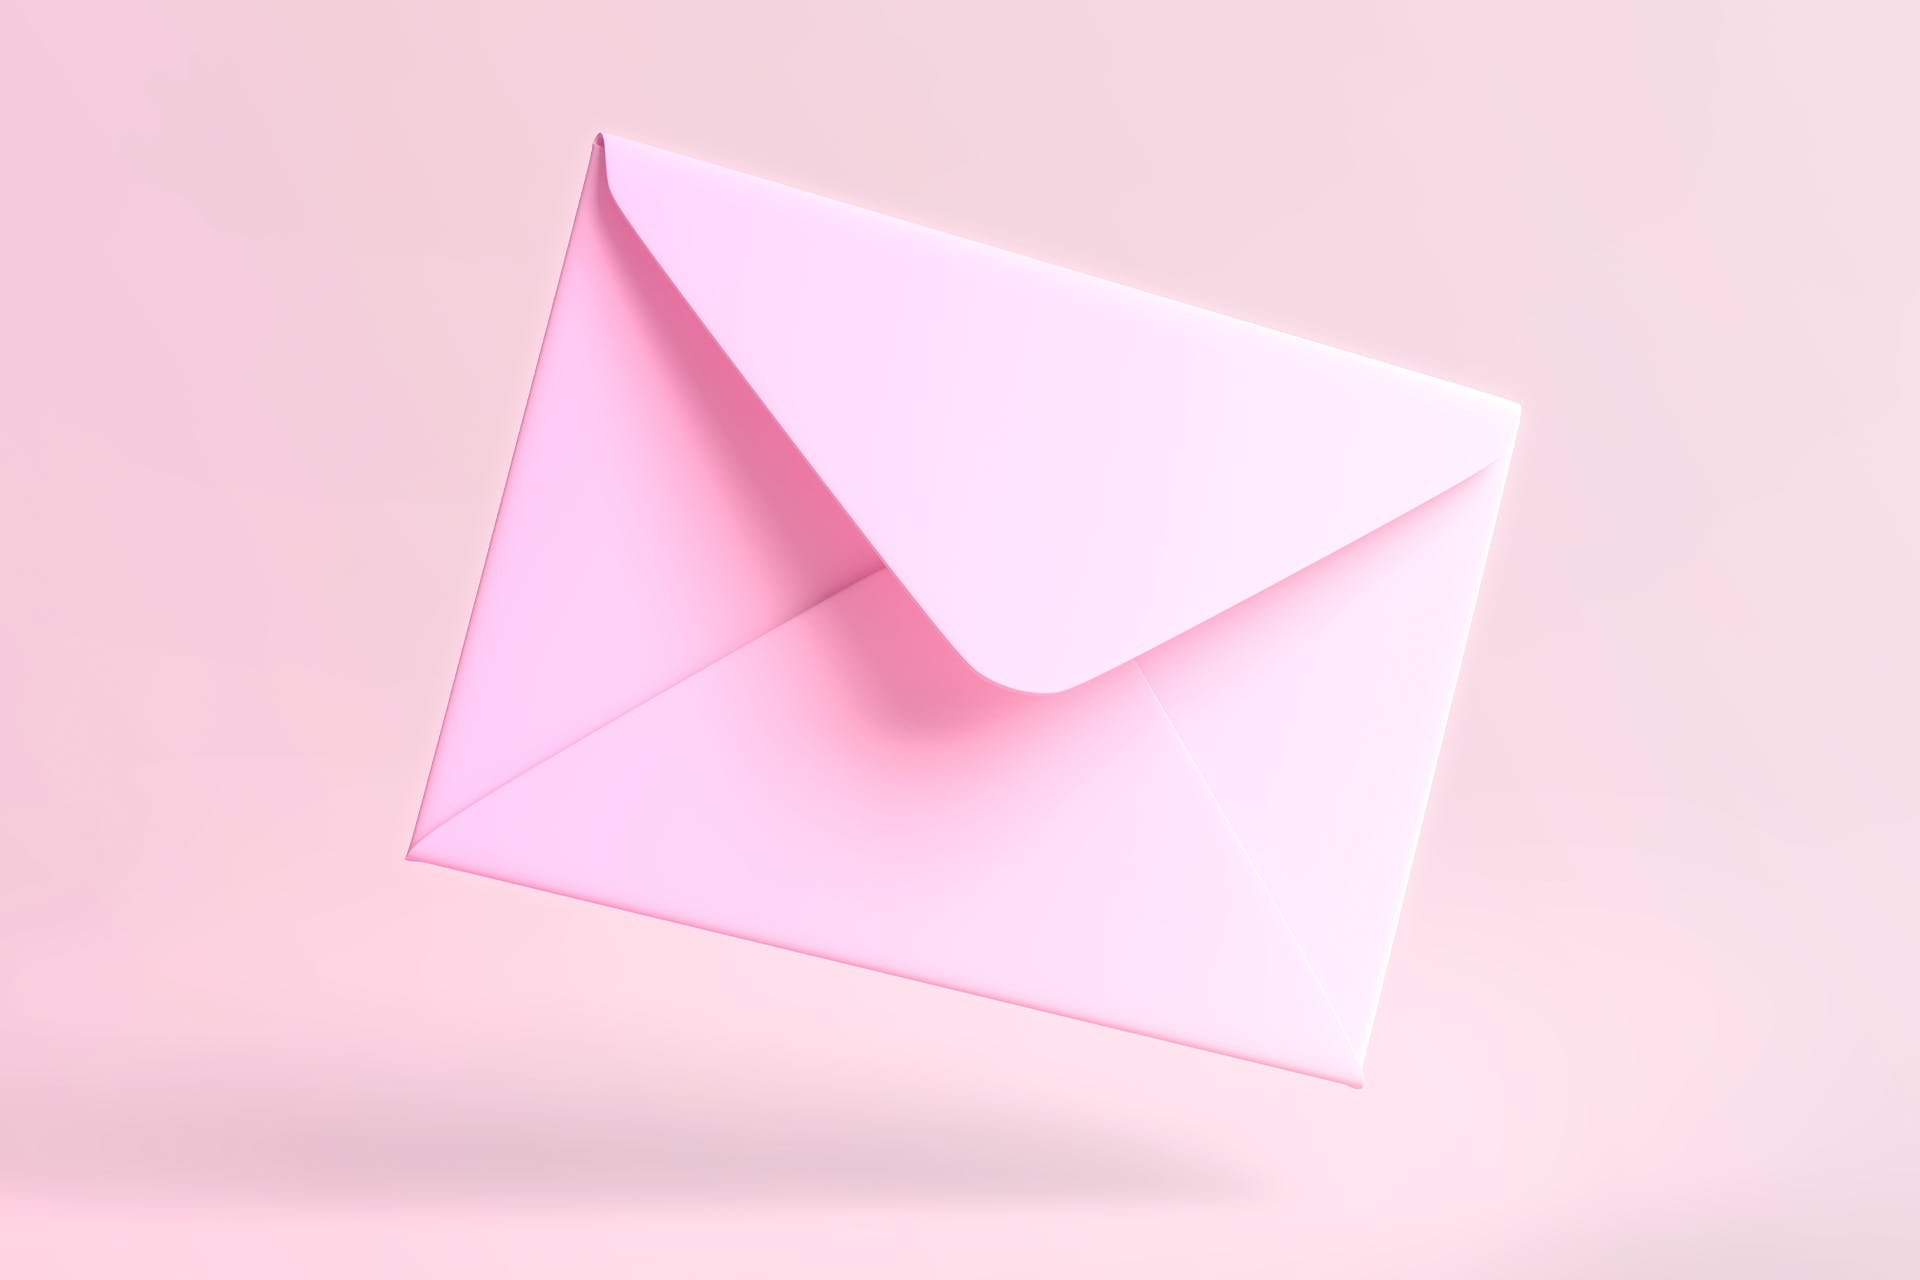 Slightly open pink envelope on light pink background. Header image for blog post: why you need an internal newsletter